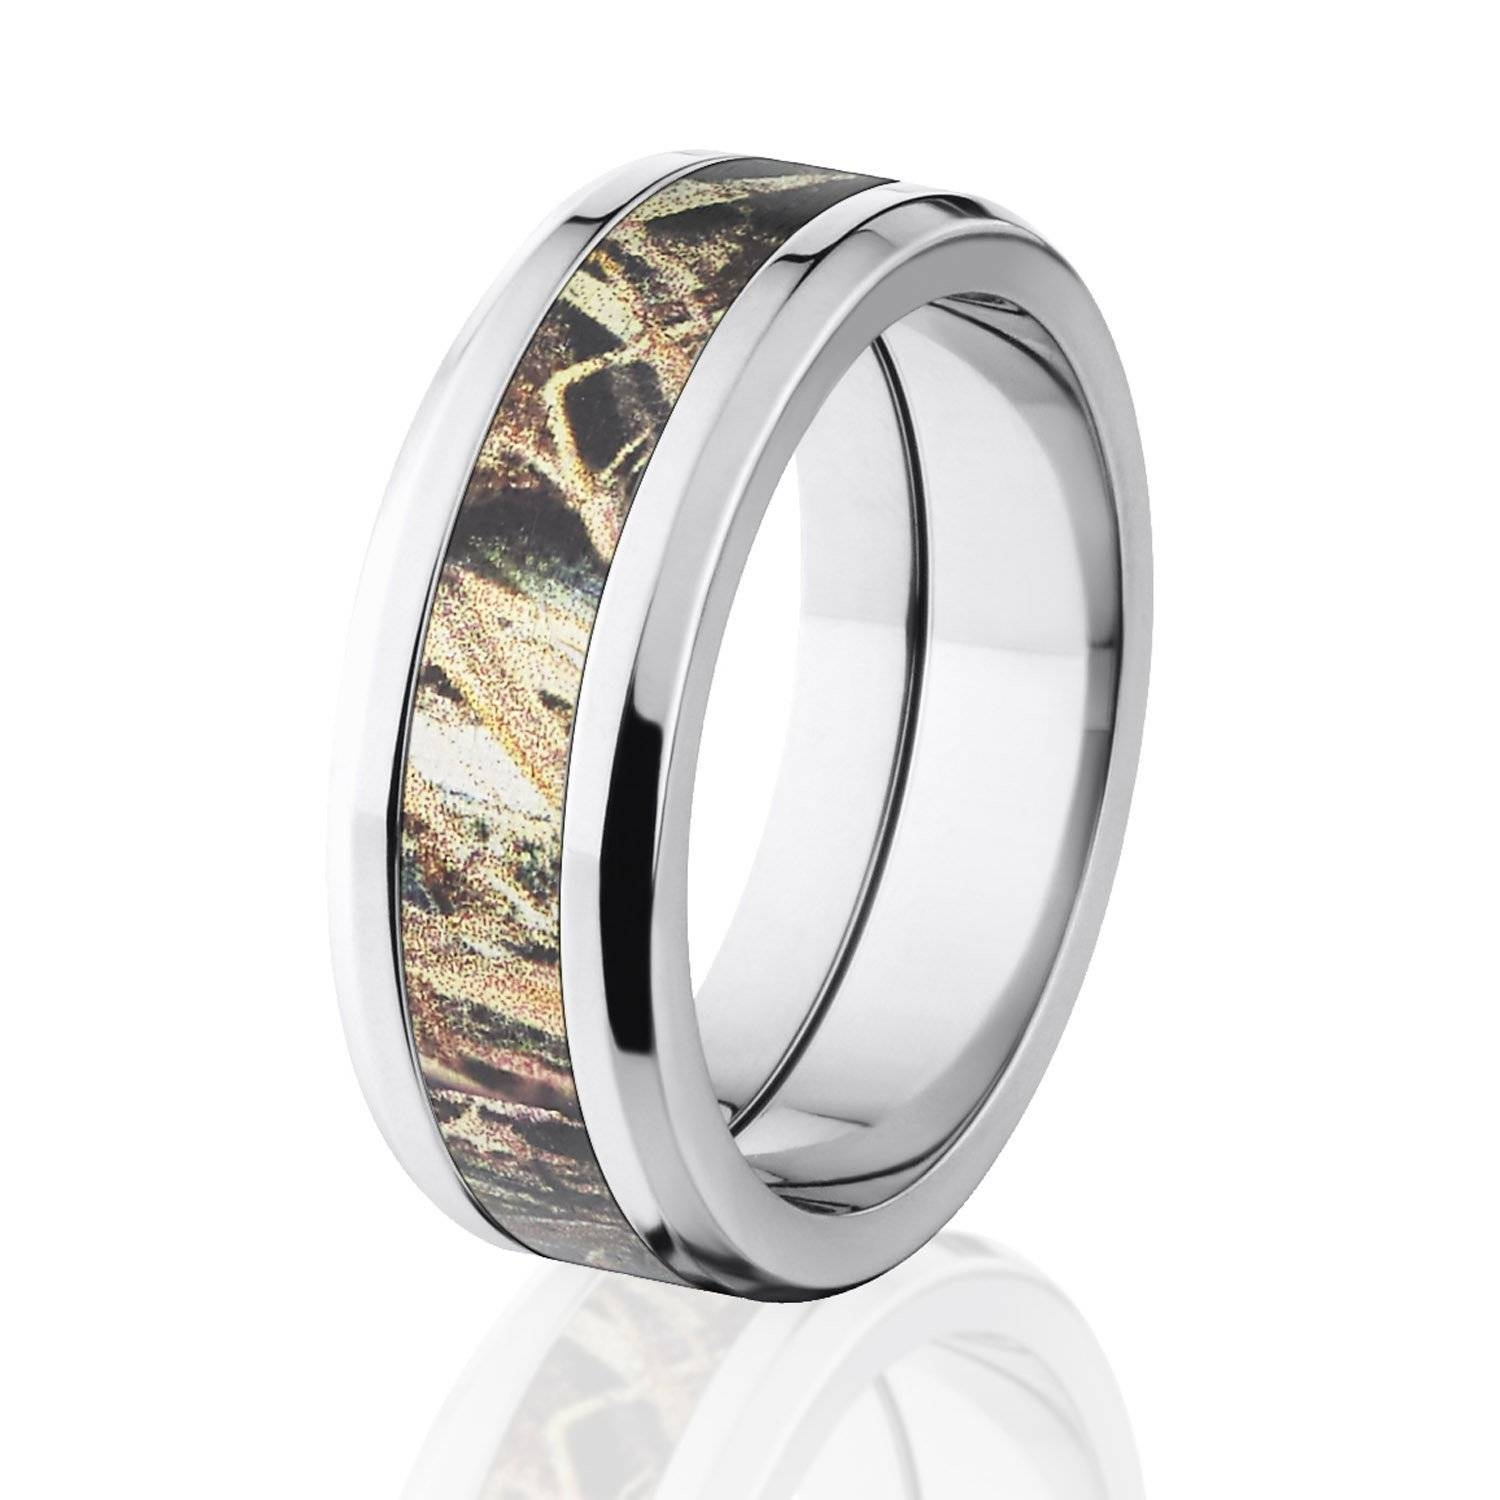 Camo Wedding Ring Sets — Marifarthing Blog : What Are Camo Wedding In Camo Wedding Rings With Diamonds (View 1 of 15)